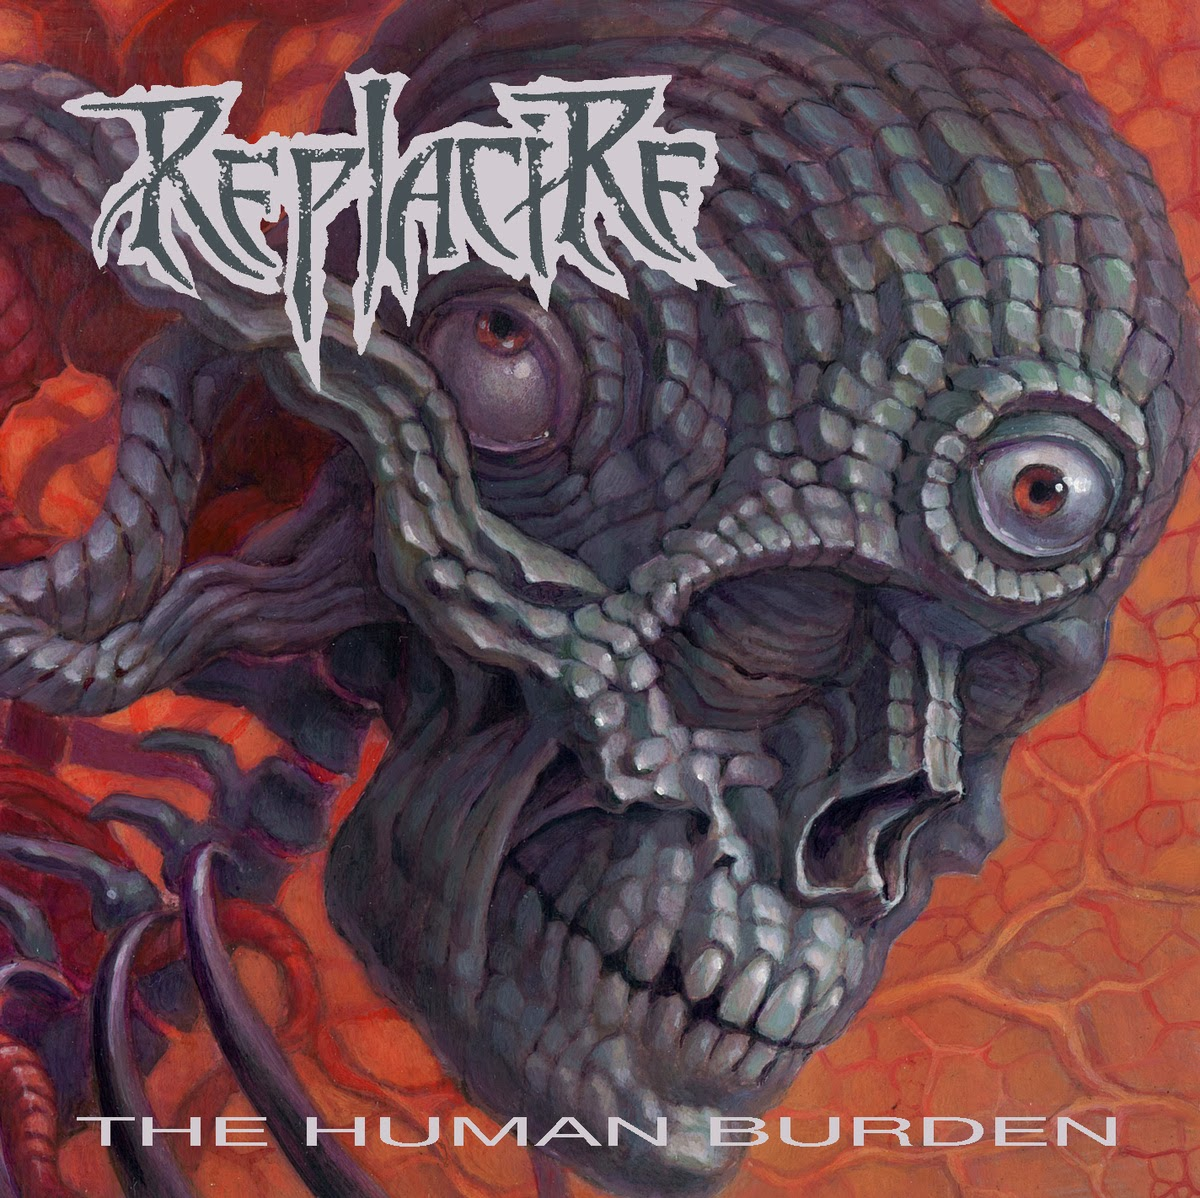 http://www.d4am.net/2014/01/replacire-human-burden.html